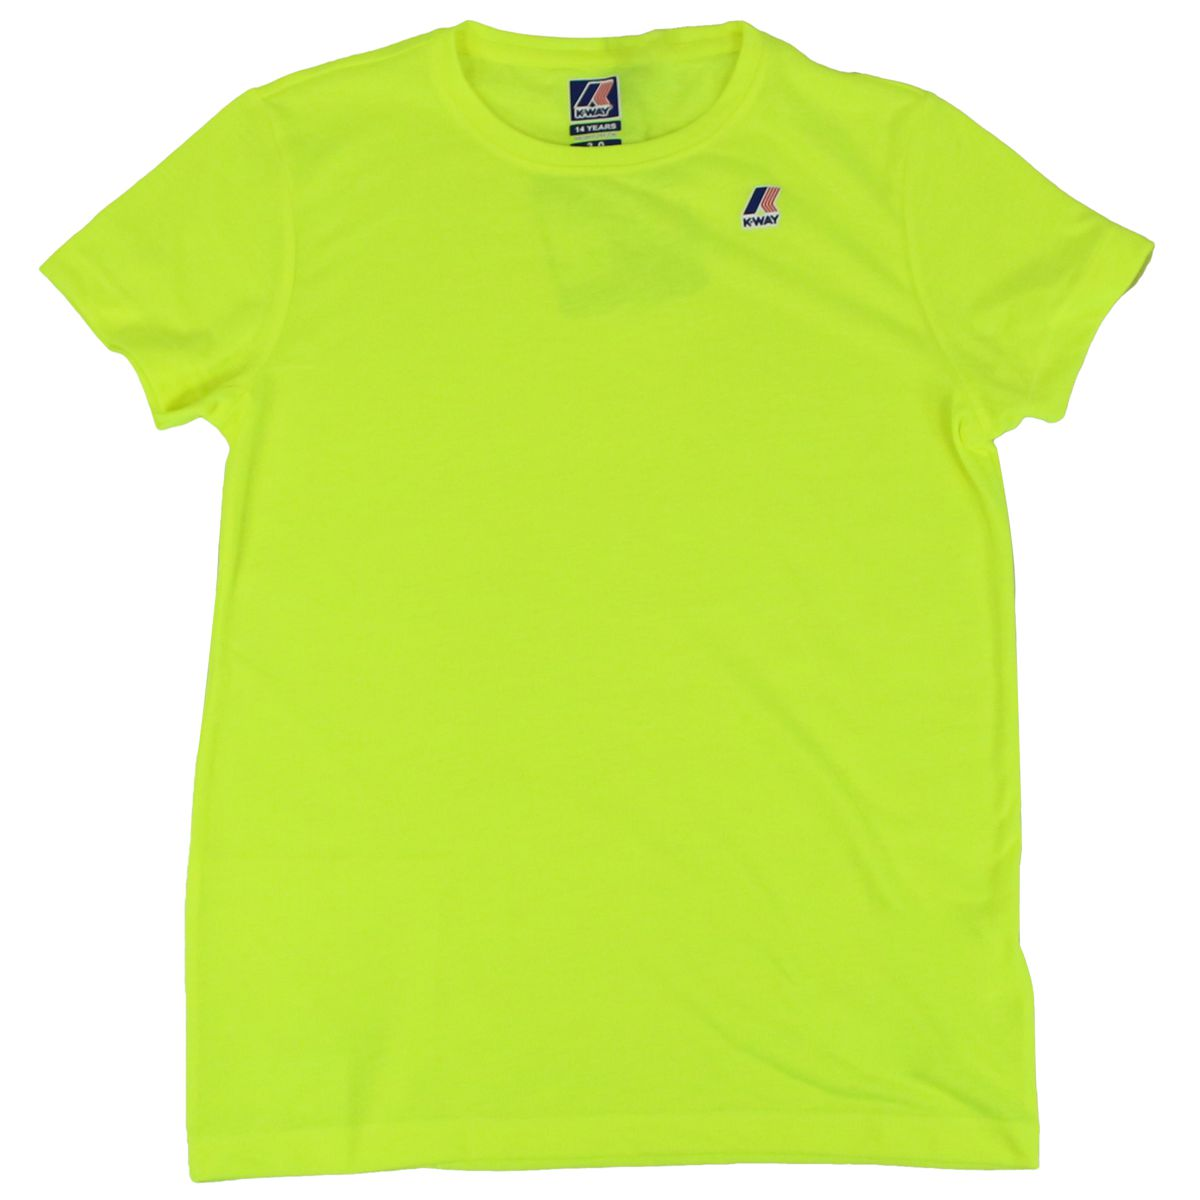 Le Vrai Edouard T-shirt Fluo yellow K-Way